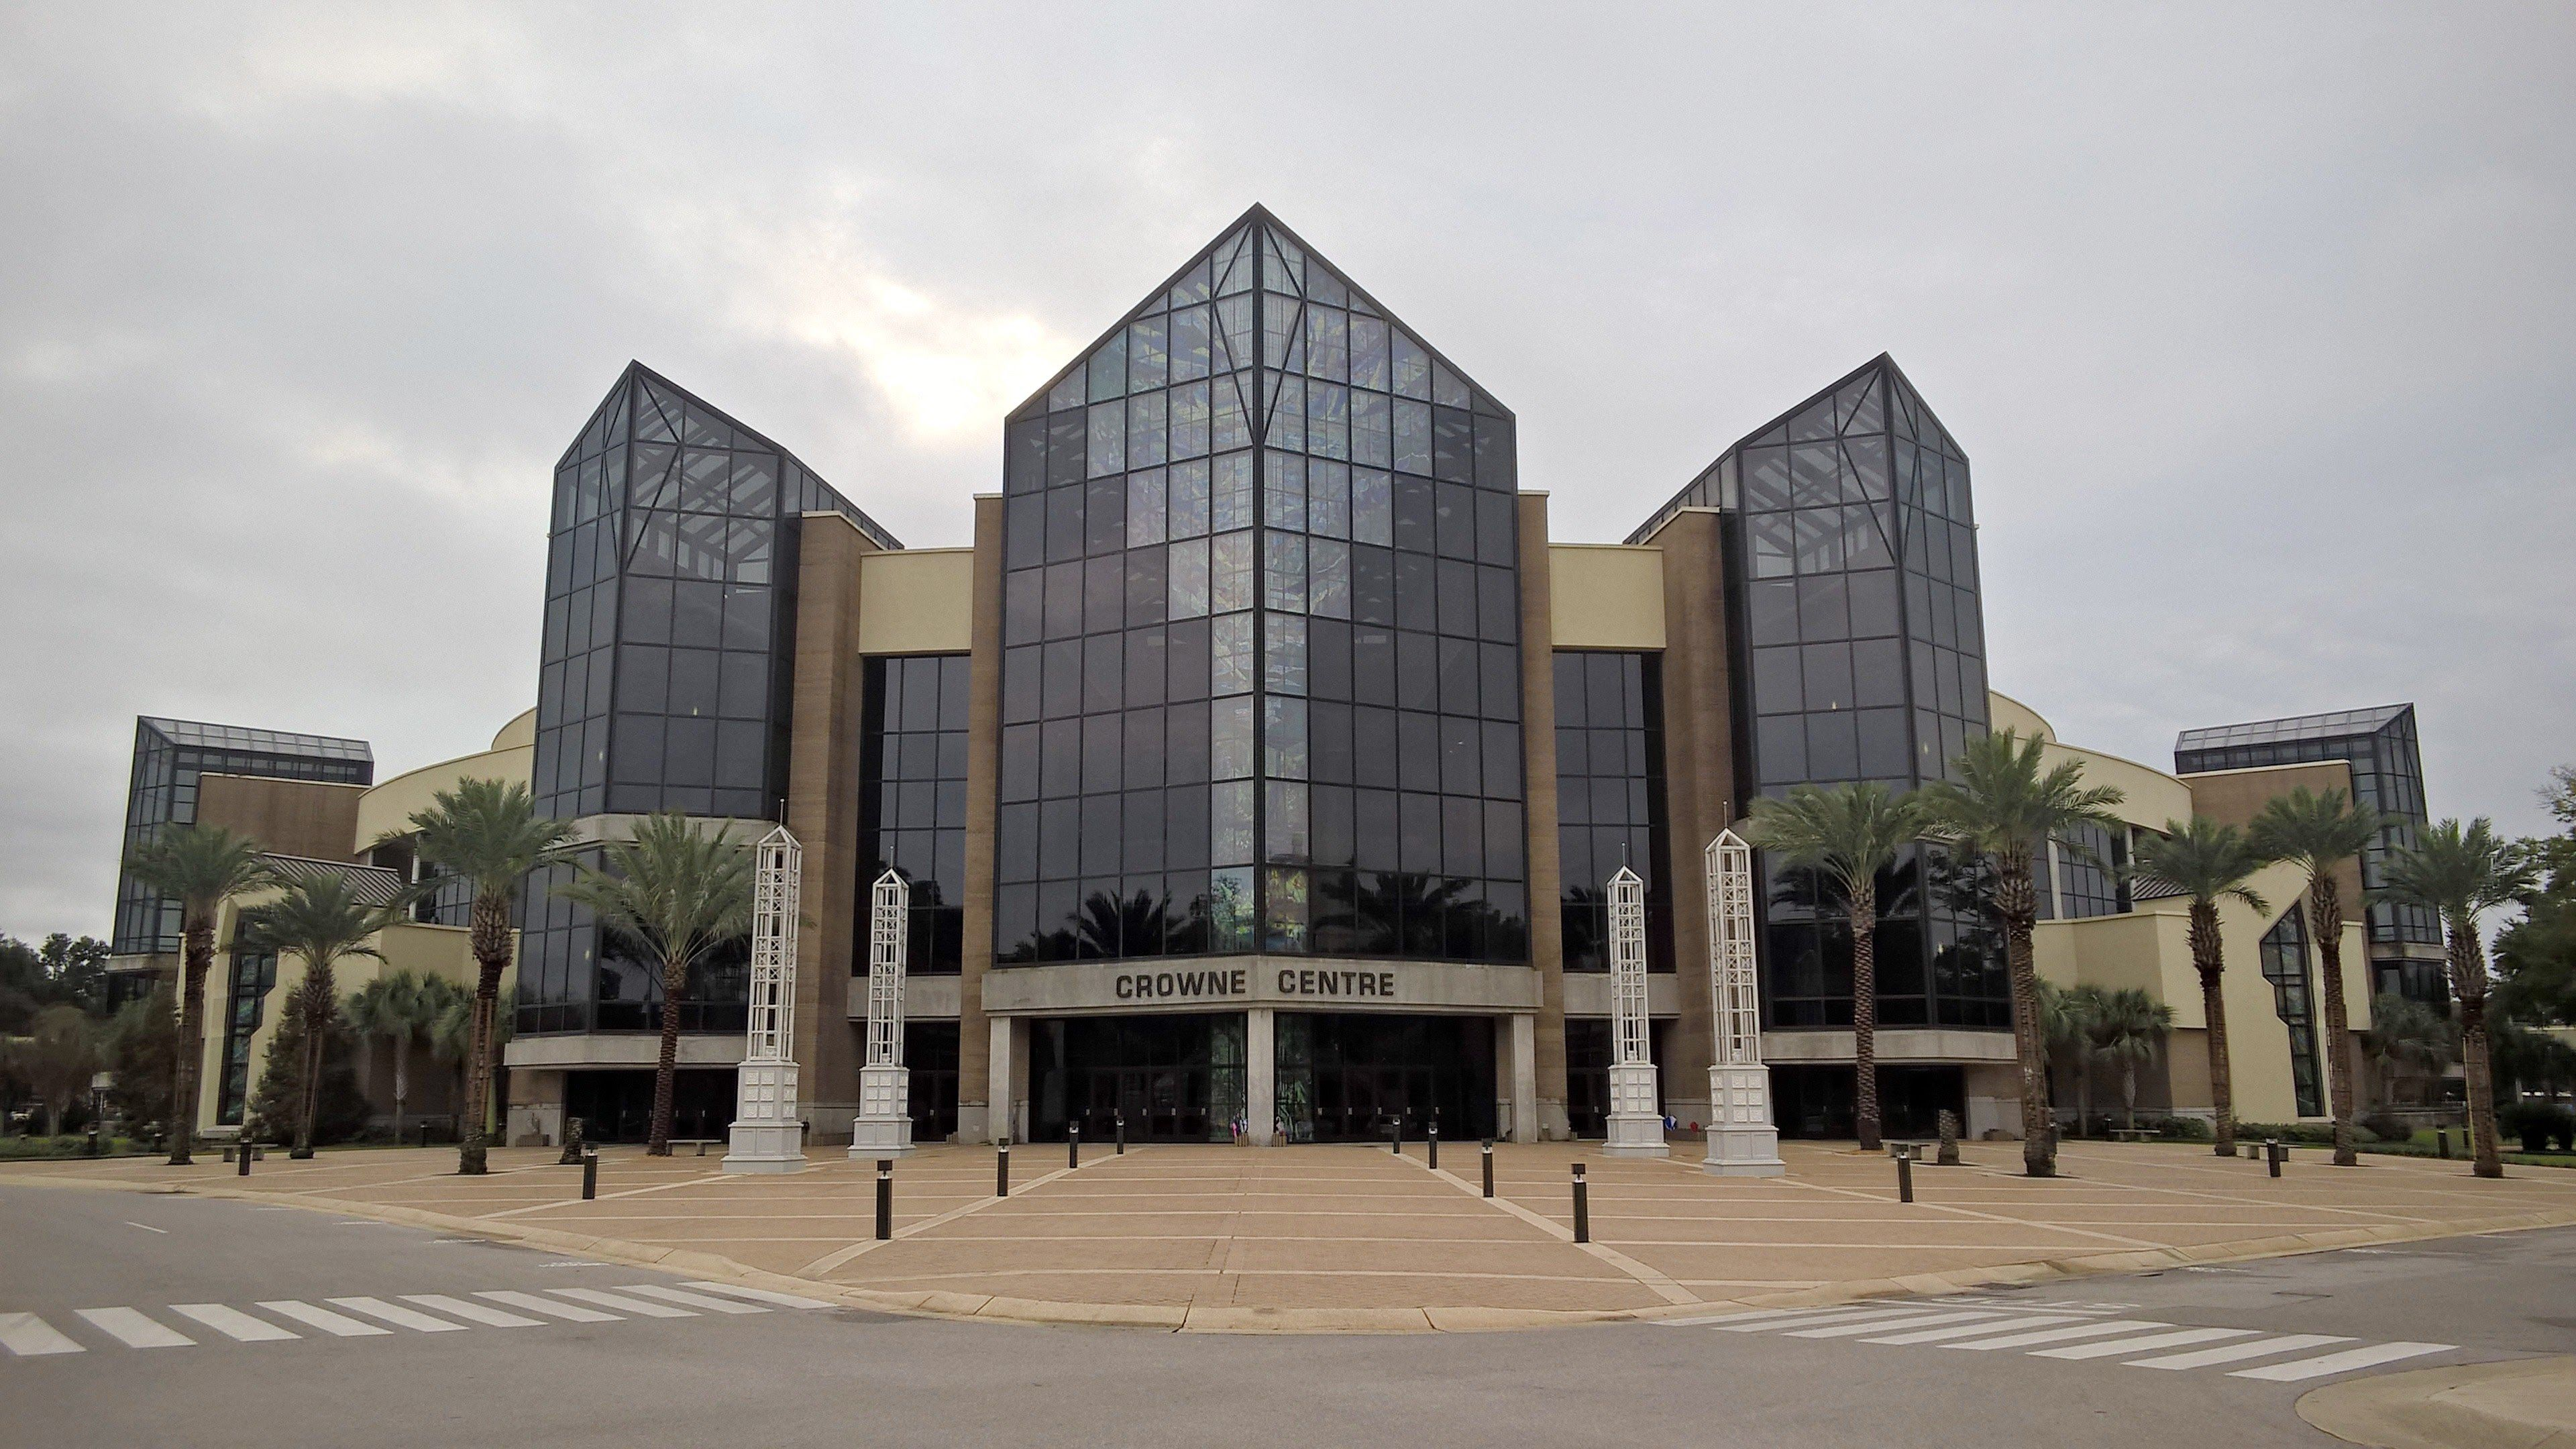 The Crowne Center, home of the Campus Church, is an imposing structure with a main auditorium capacity of over 6000 seats, plus two chapels and other side rooms. The imported palms seen here, too sensitive to freezing, were replaced in the summer of 2016. Stubs from palms toppled by the last hurricane remain visible.